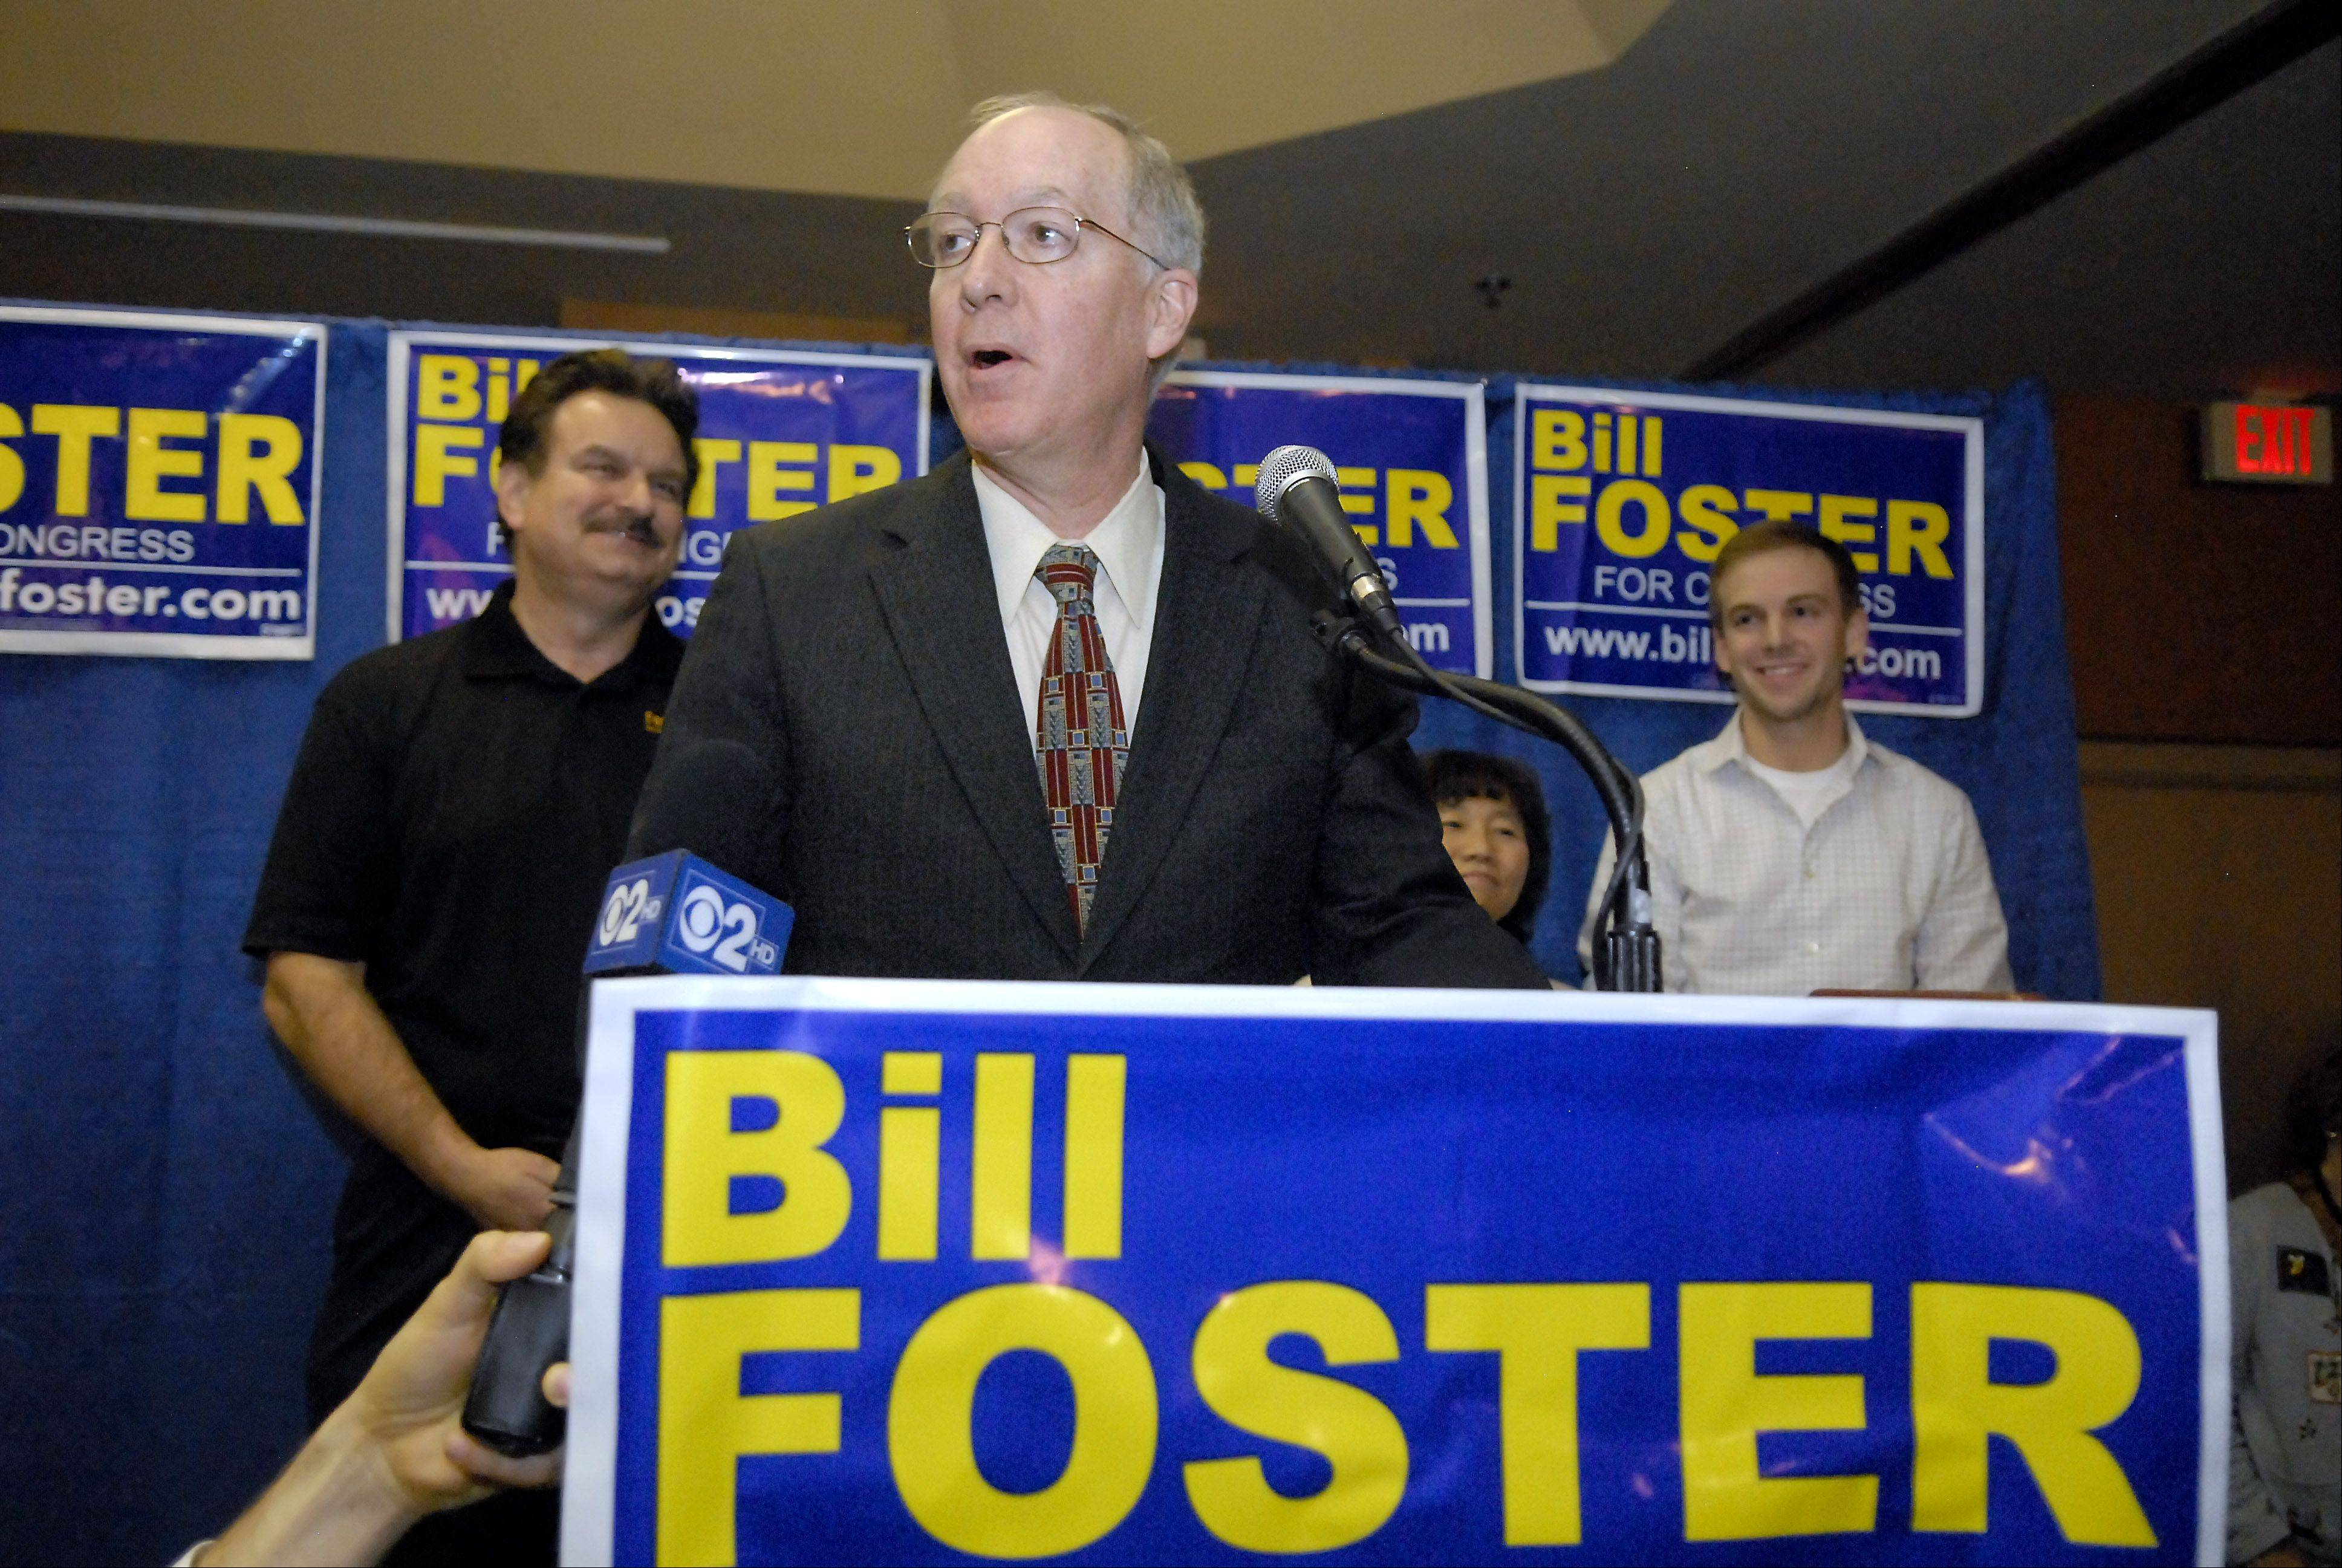 Bill Foster gives his acceptance speech after winning the 11th Congressional district election.